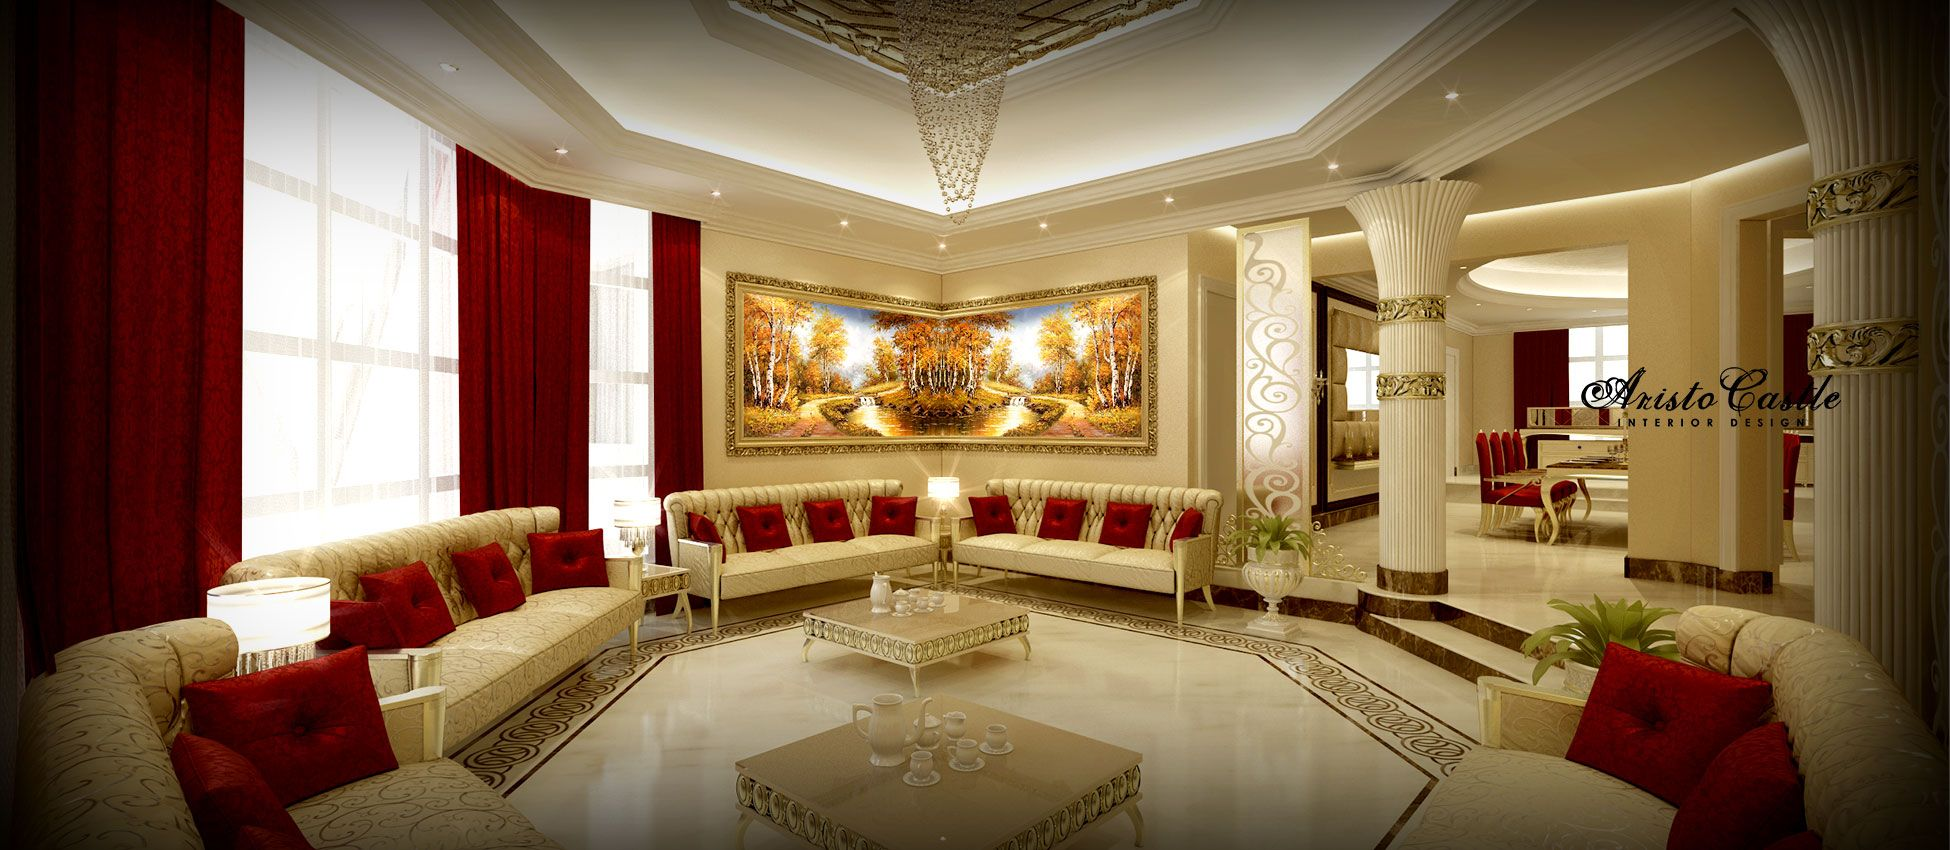 Palace Interior Design By Aristo Castle Luxury Companies In Dubai Classic Interiors Modern